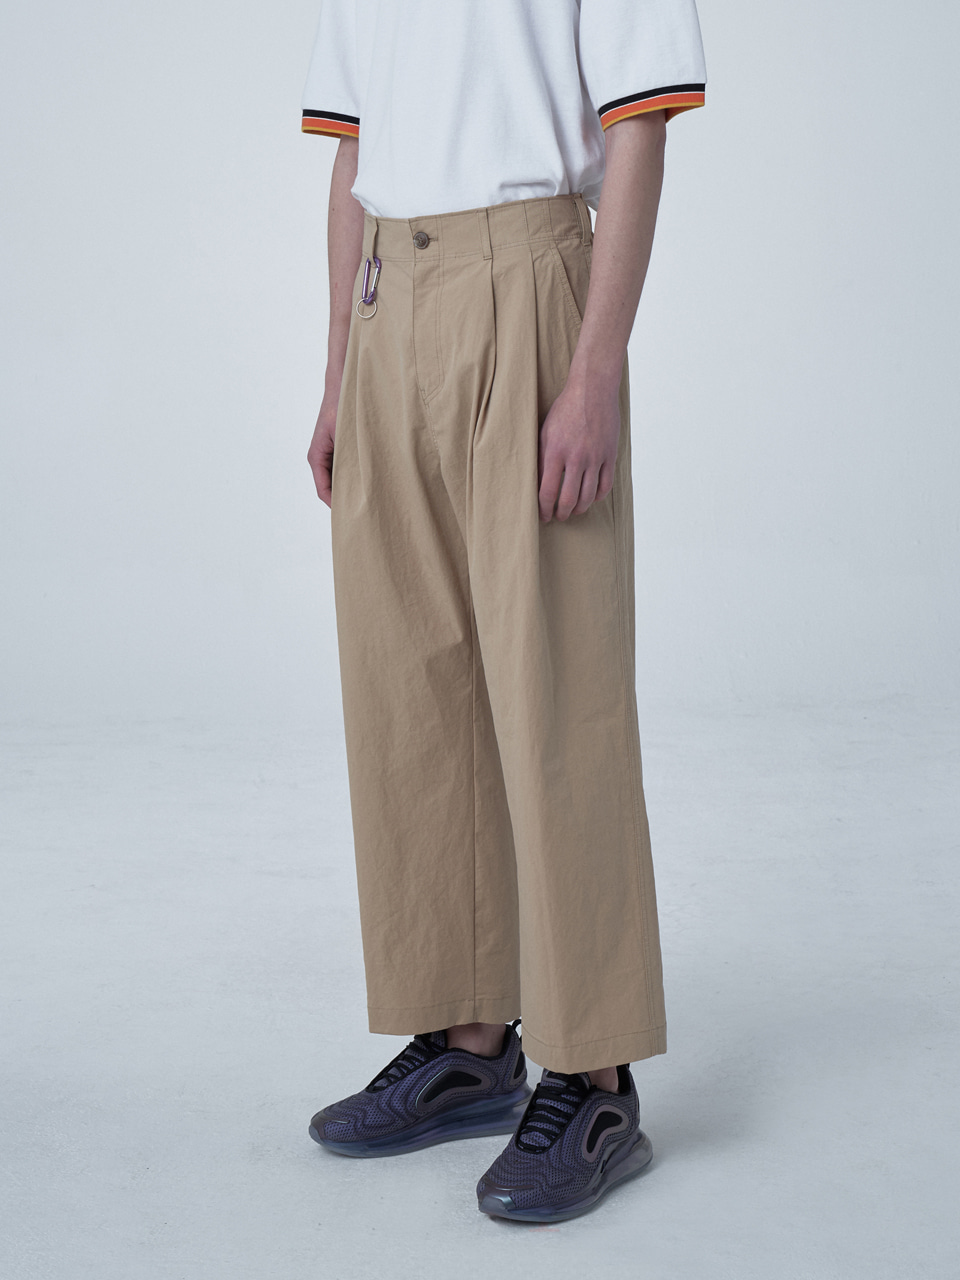 그레이휴WIDE BANDING PANTS medium beige